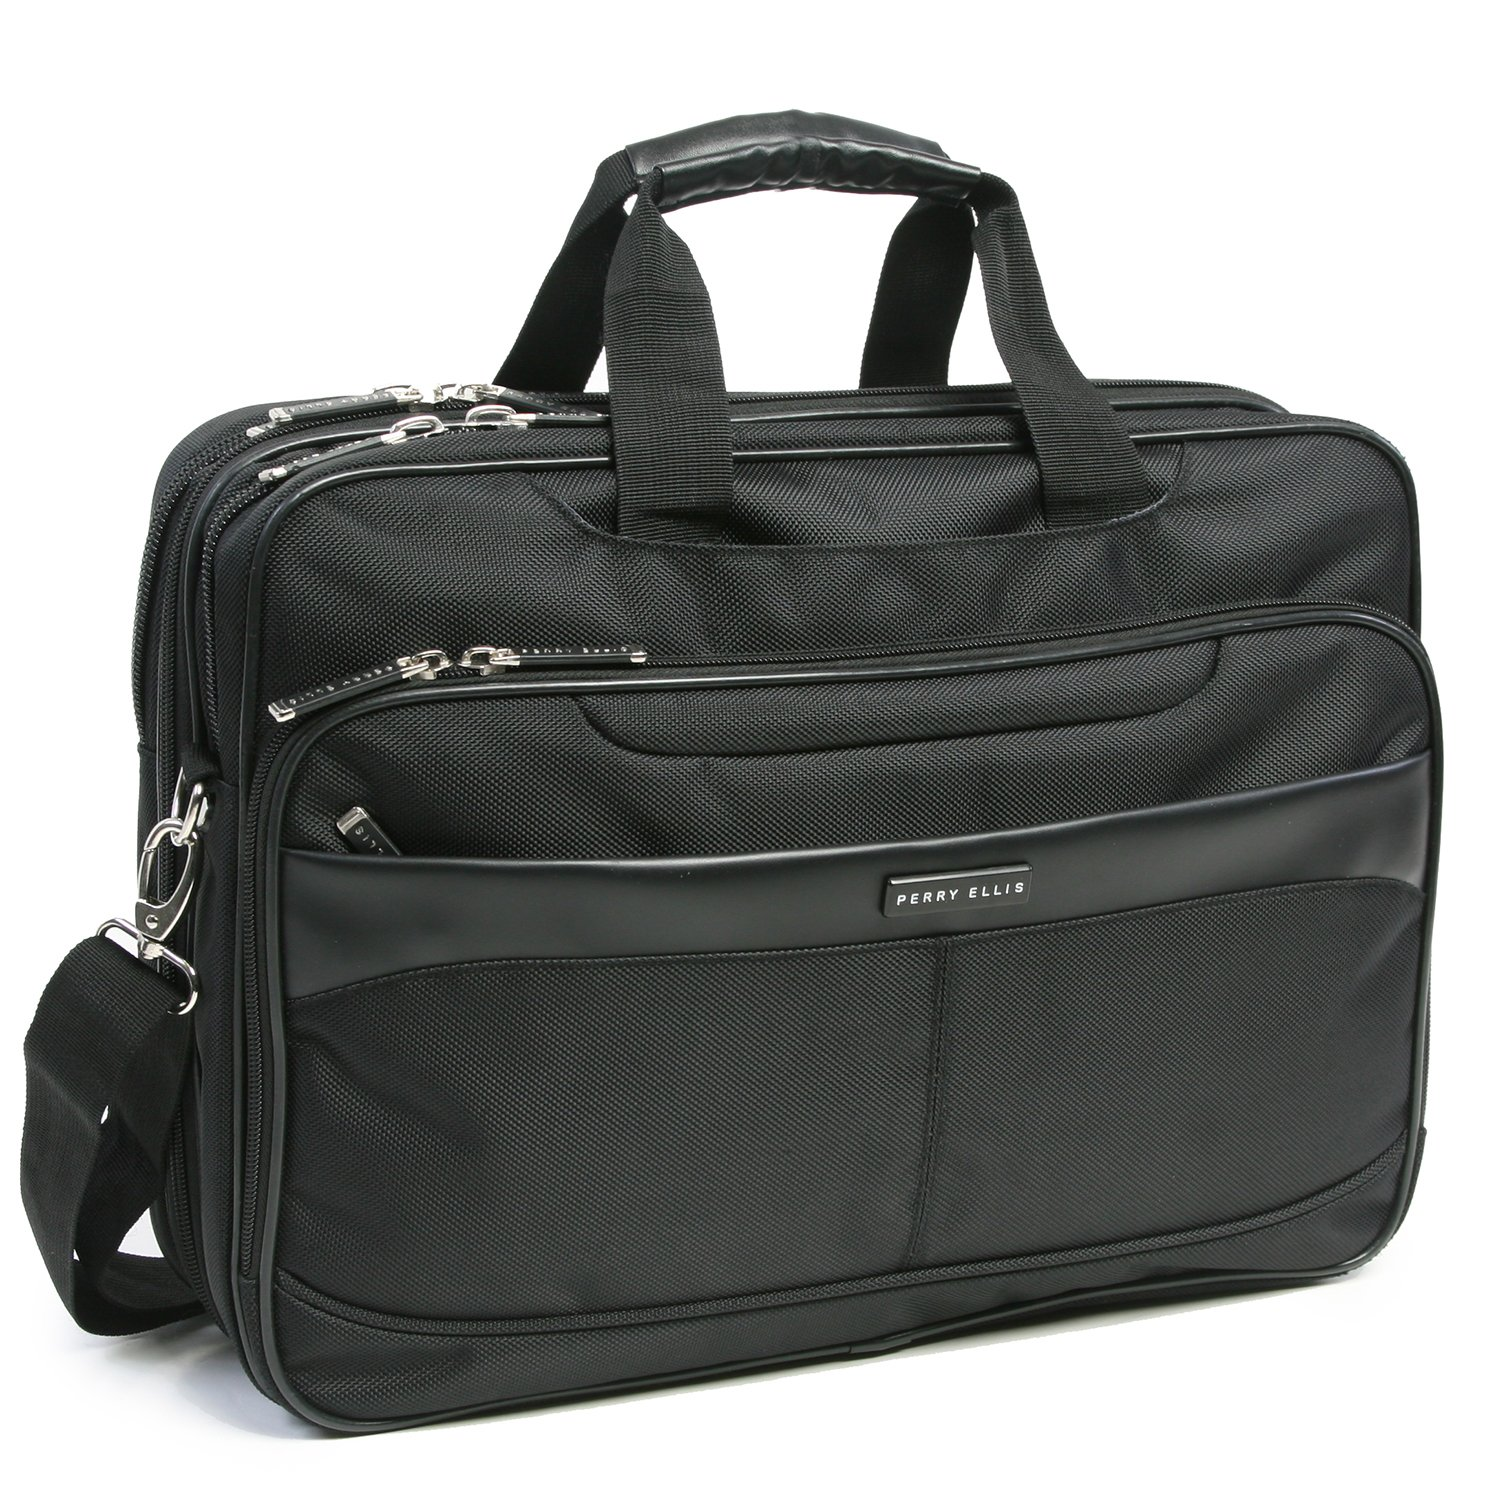 Perry Ellis PE-BC-200, Mallette Mixte Adulte, Noir (Noir) - PE-BC-200 Perry Ellis Luggage